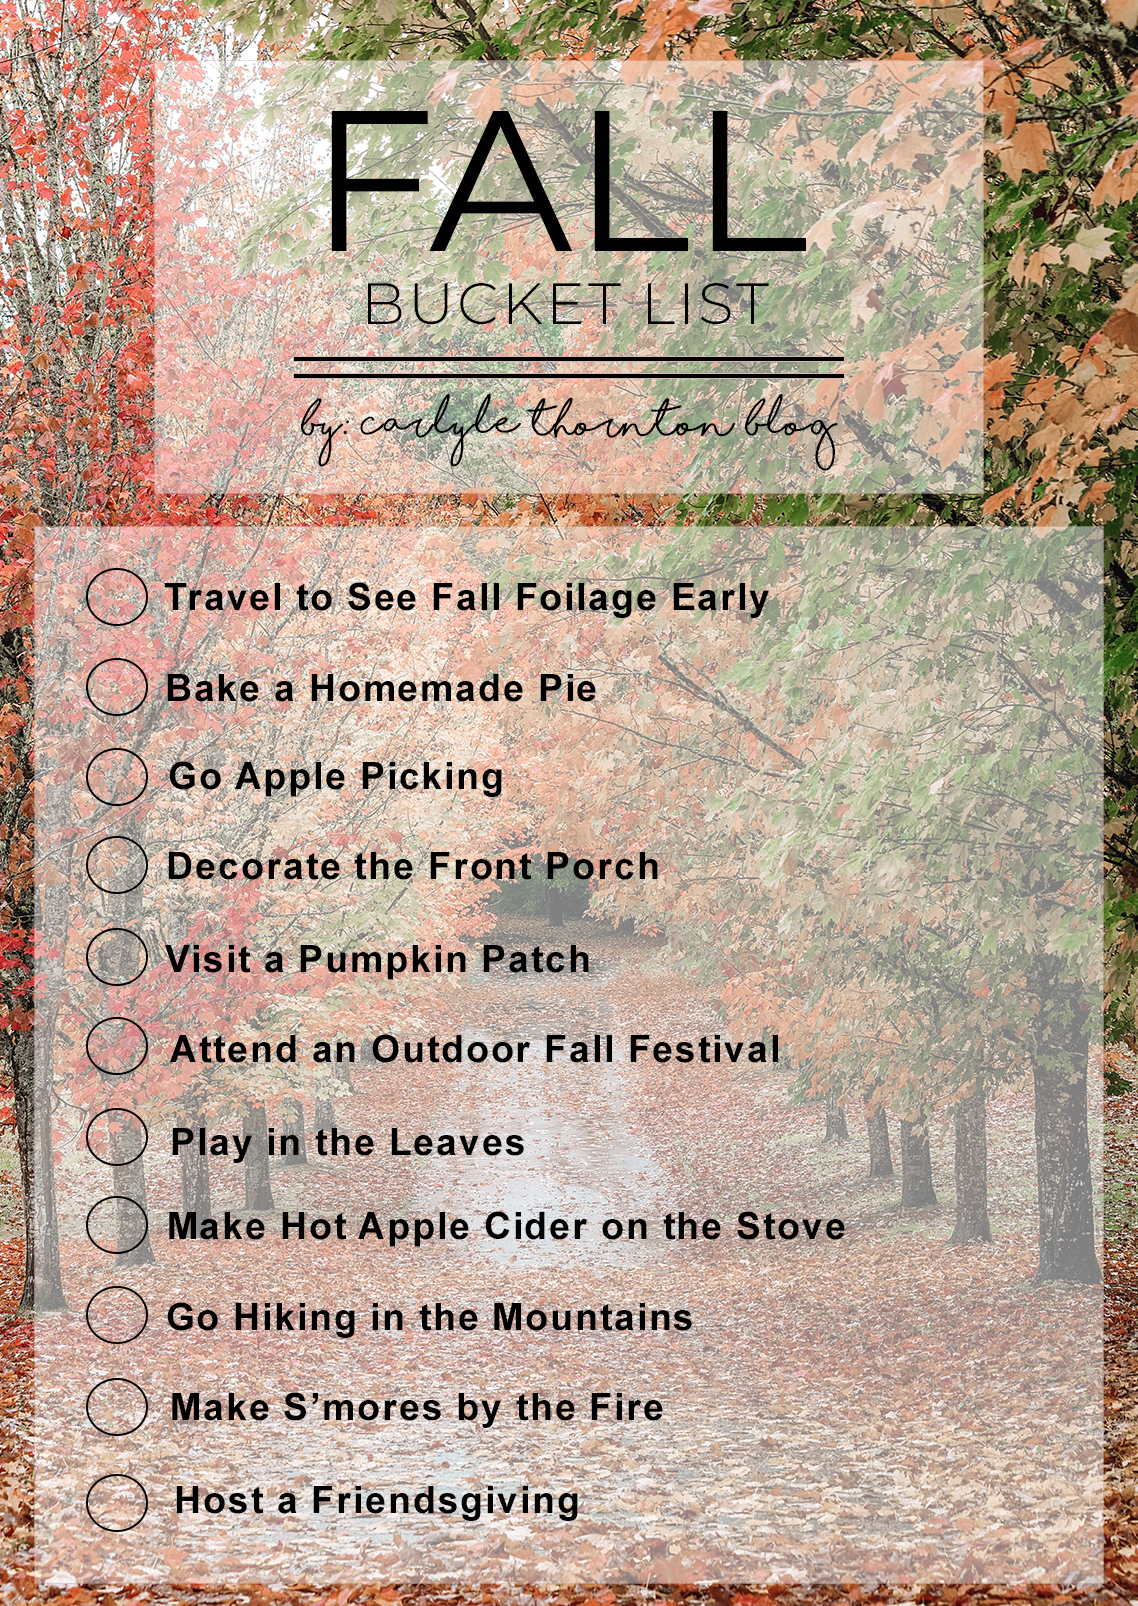 2018-Fall-Bucket-List.jpg